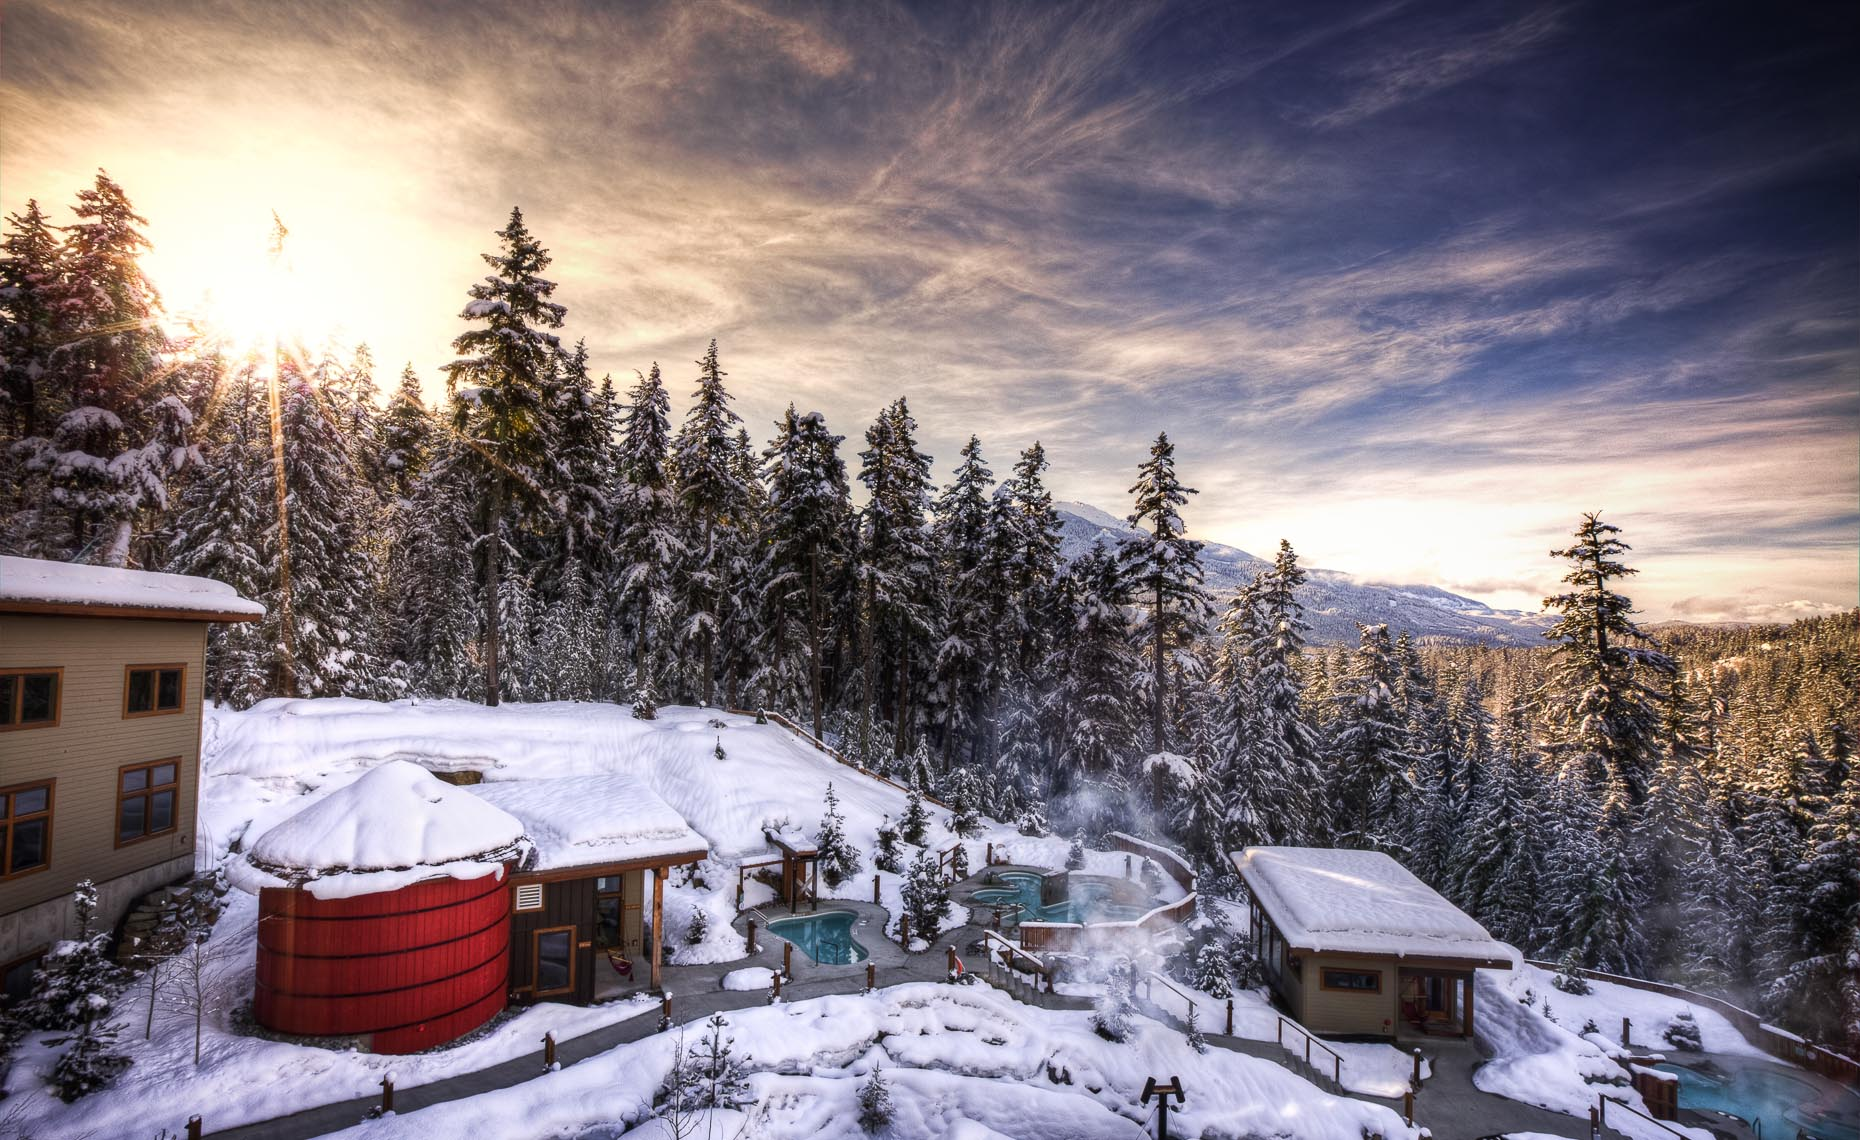 Scandinave spa in whistler BC at sunset in the winter.